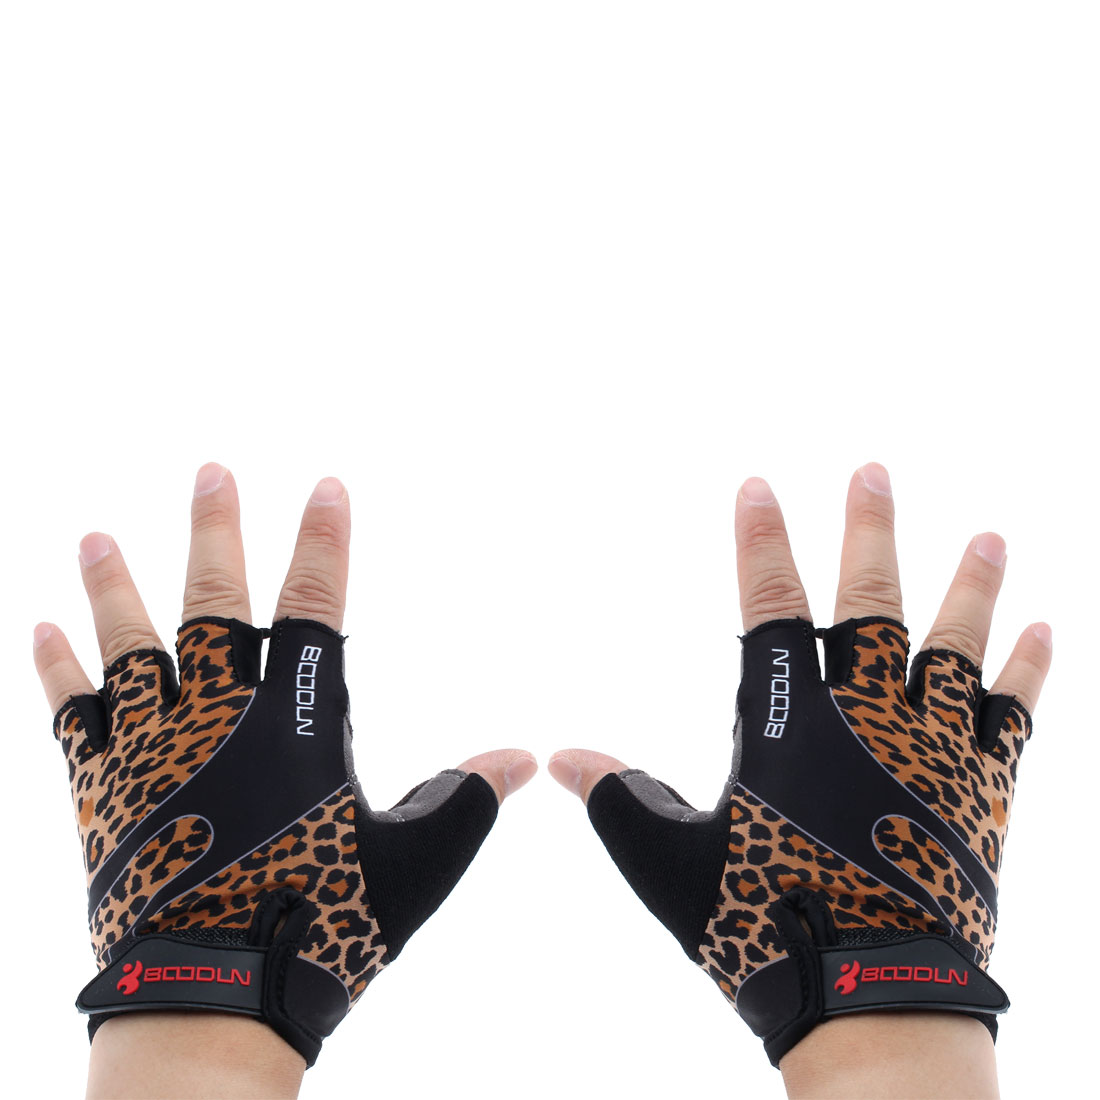 BOODUN Authorized Polyester Exercise Sports Lifting Training Bodybuilding Wrist Protector Half Finger Fitness Gloves Leopard Print L Pair